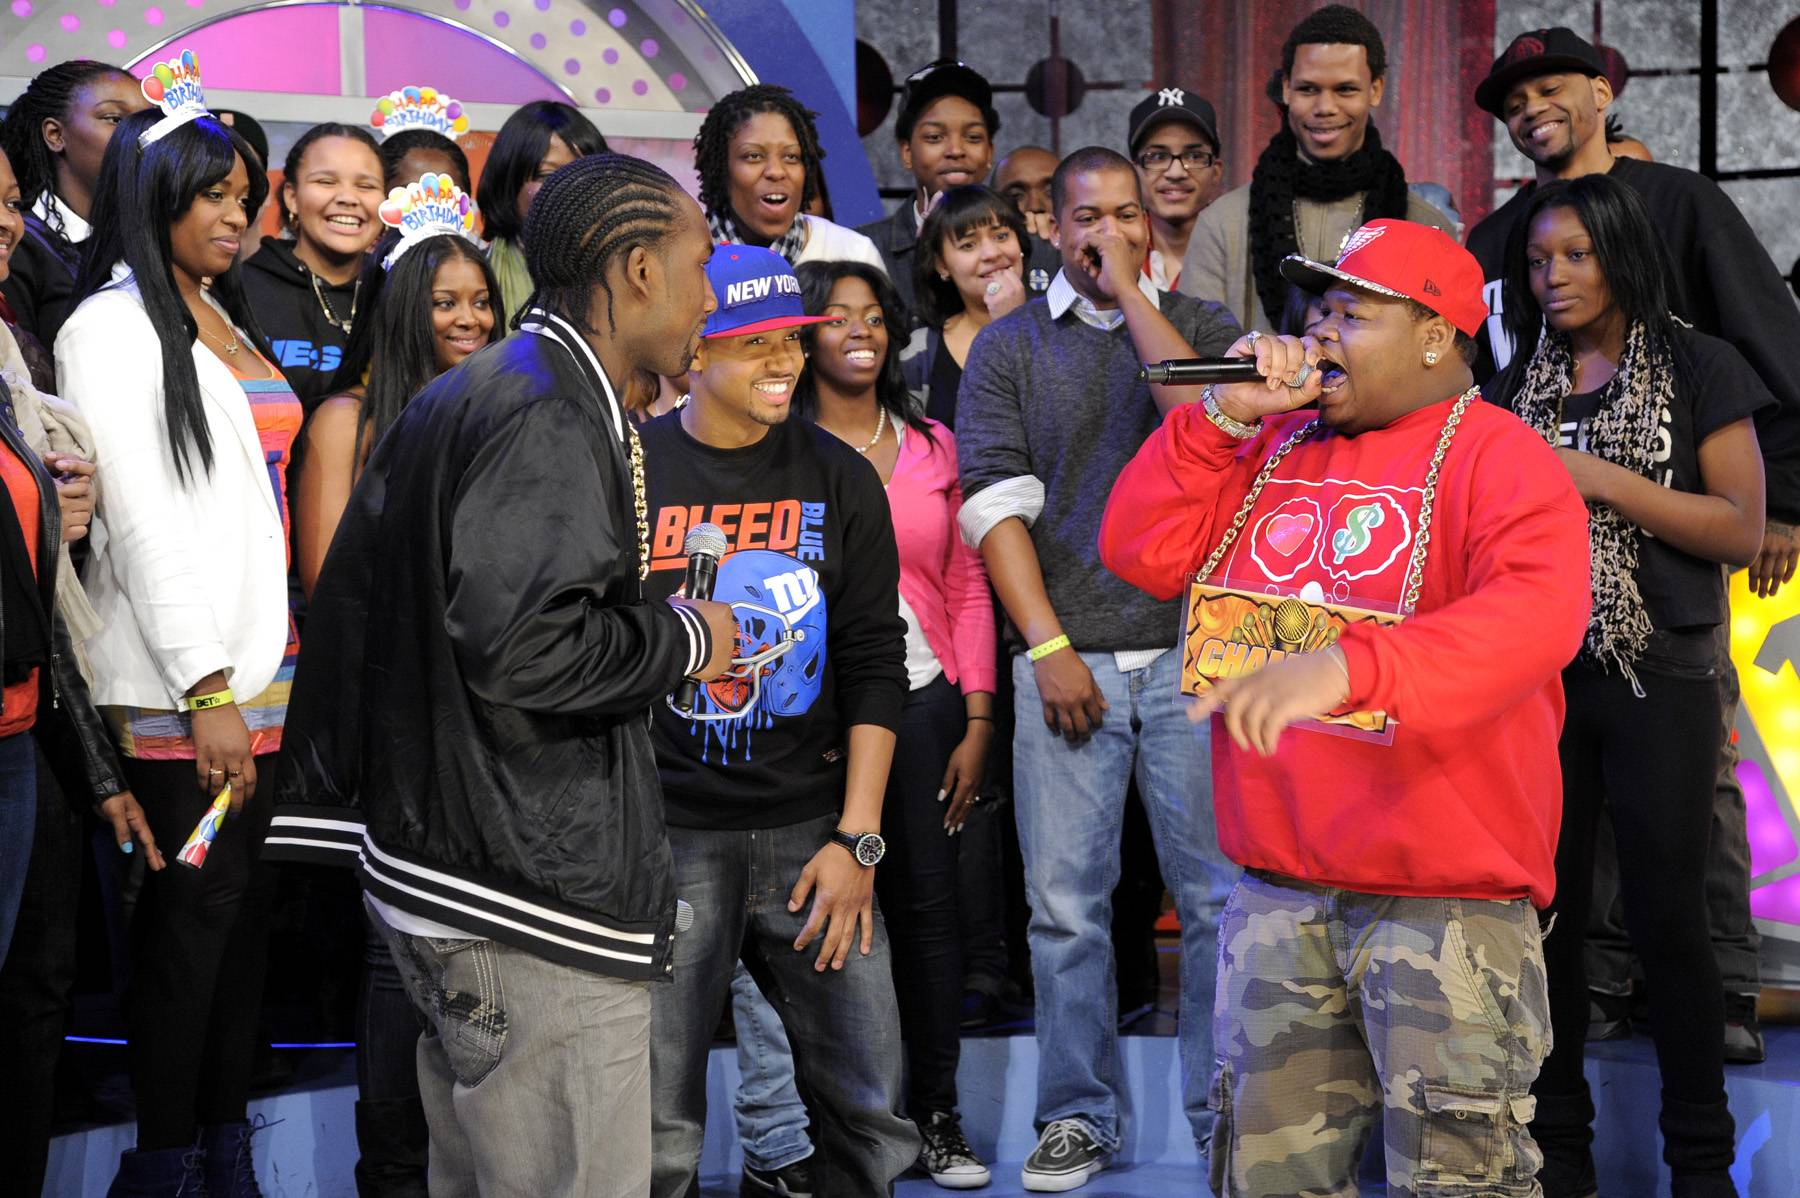 Rough Day - Freestyle Friday champion Relly battles Dolo Chillin at 106 & Park, January 20, 2012. (Photo: John Ricard / BET)